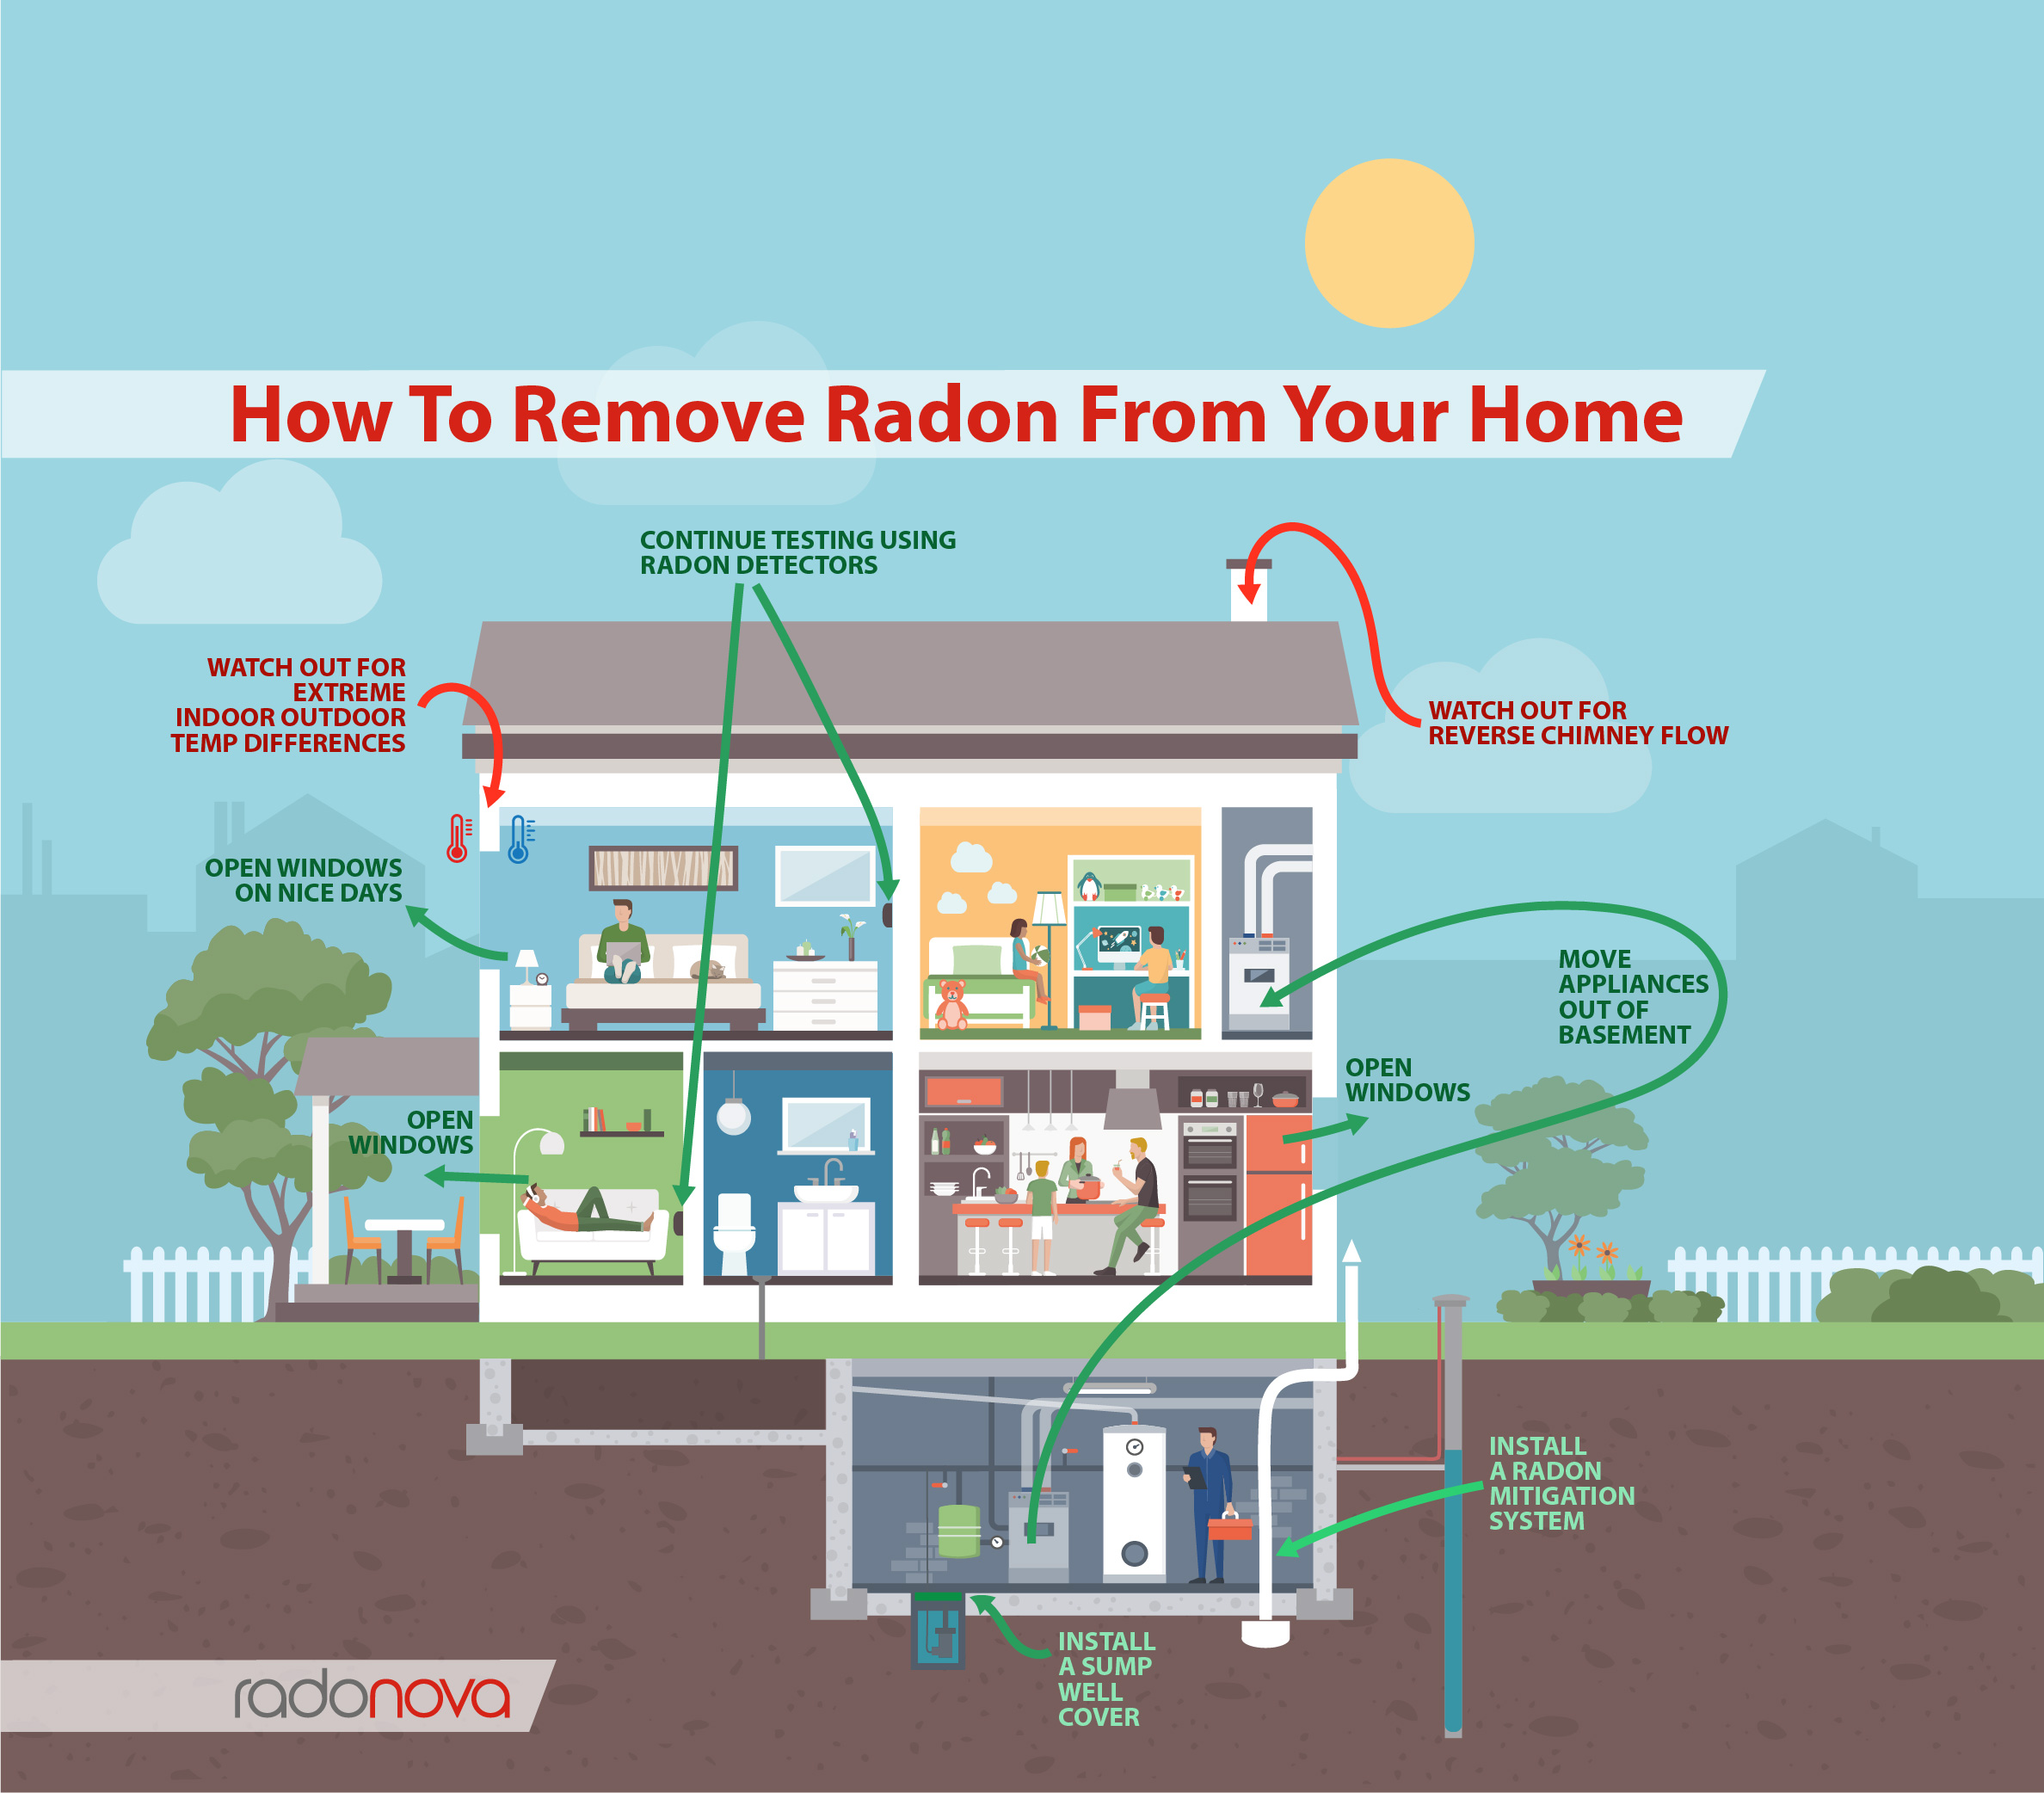 How to remove the radon from your home.